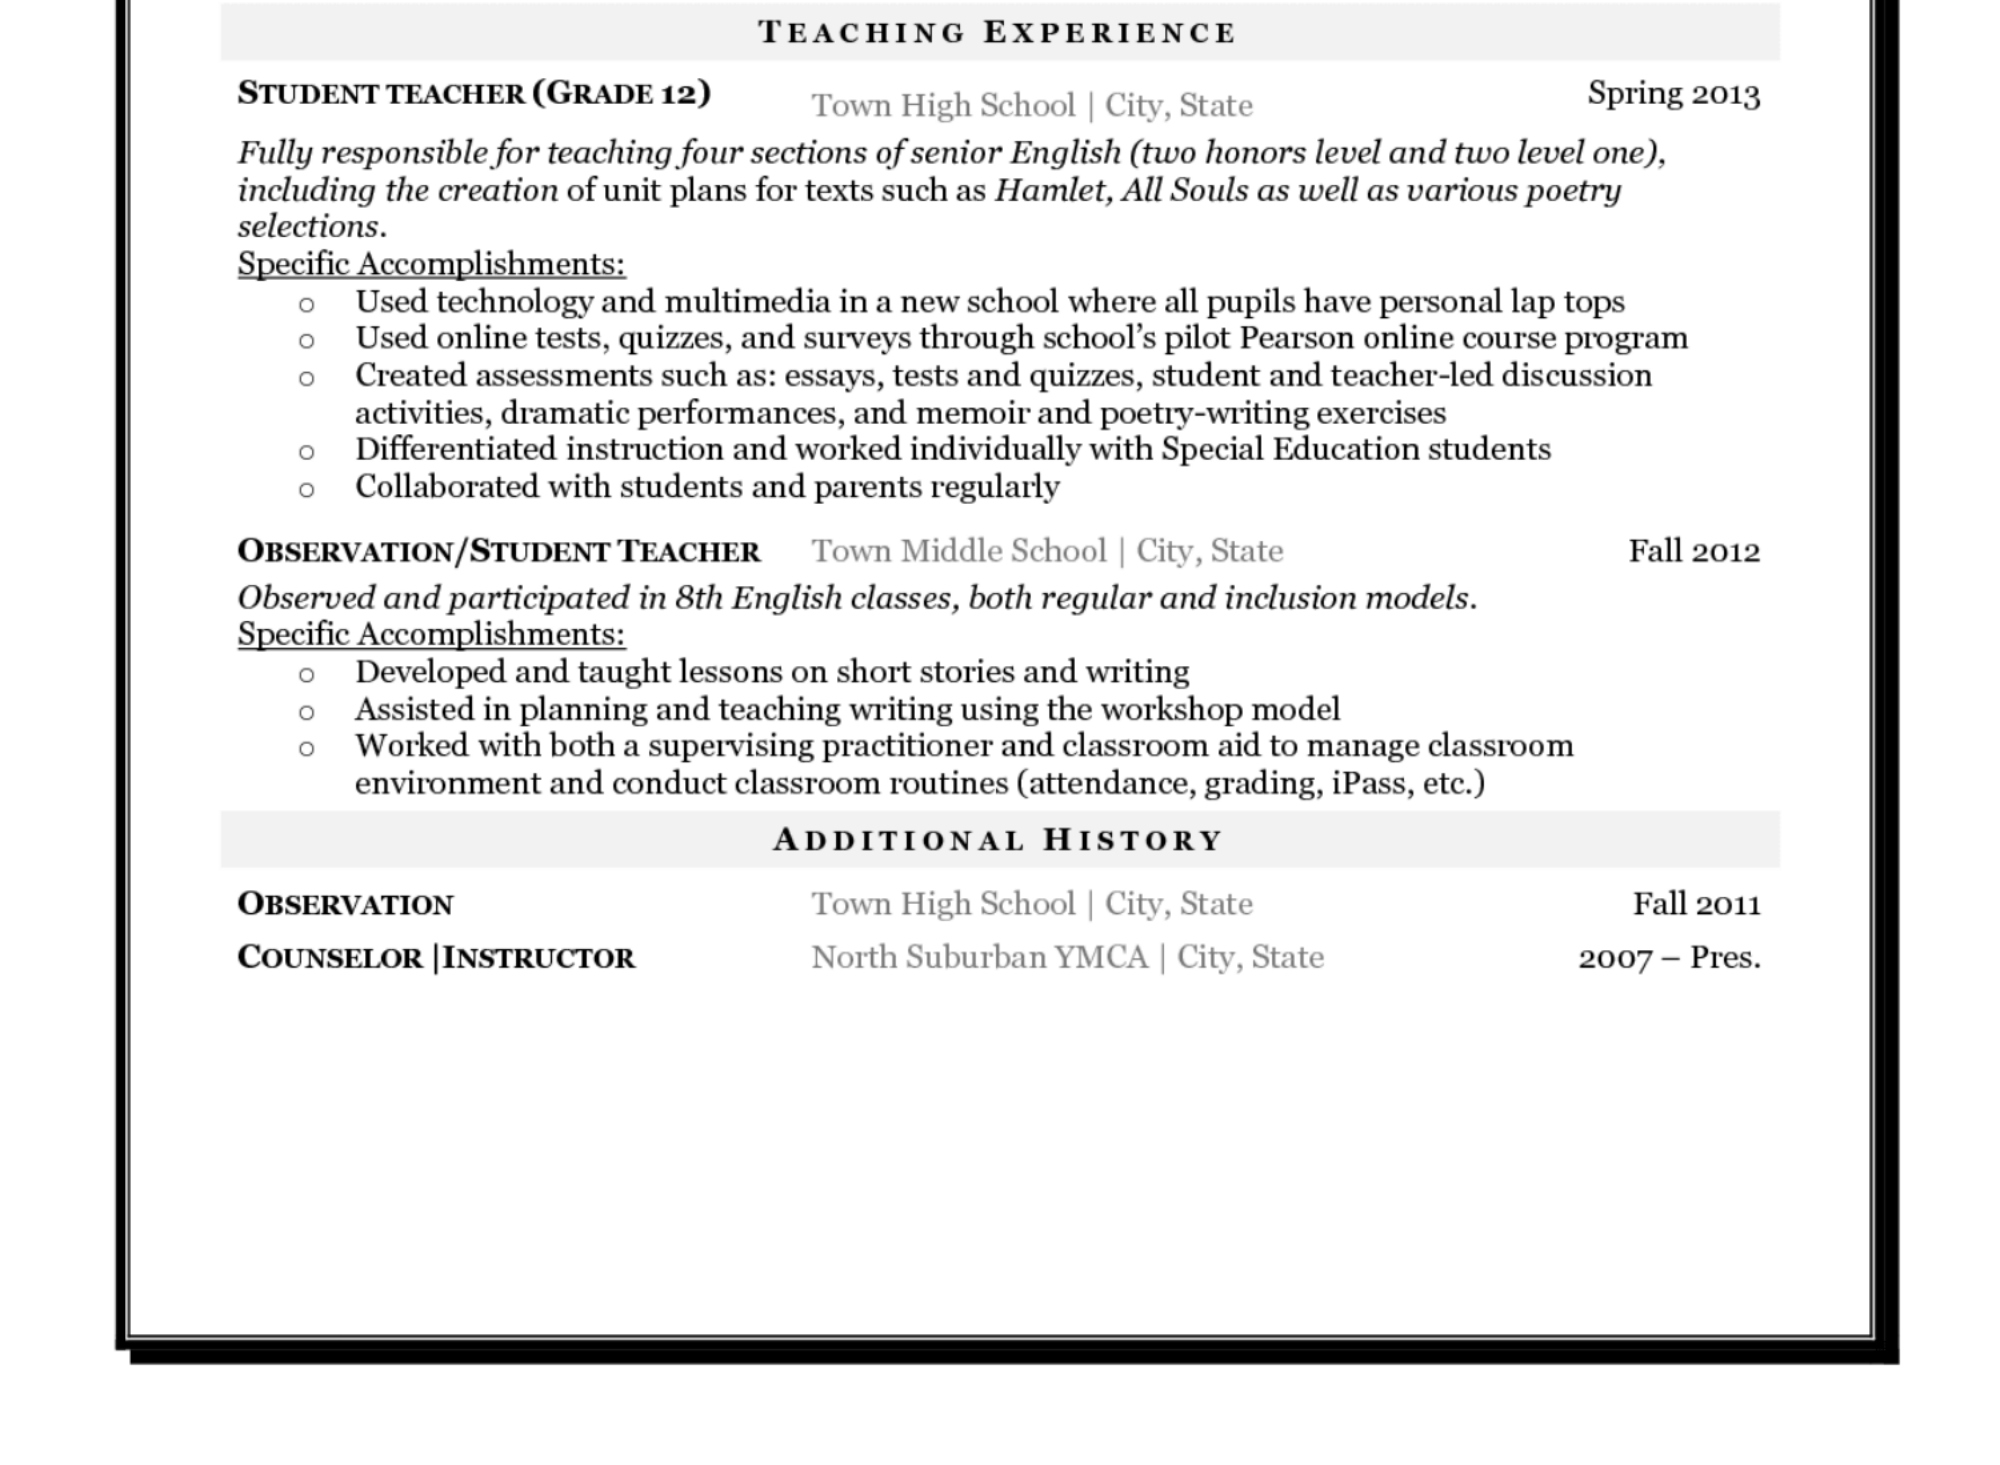 completed coursework on resume The education section of your resume can be a little tricky: she wondered if it was ok to list that she'd completed the coursework, or if would it appear deceptive.